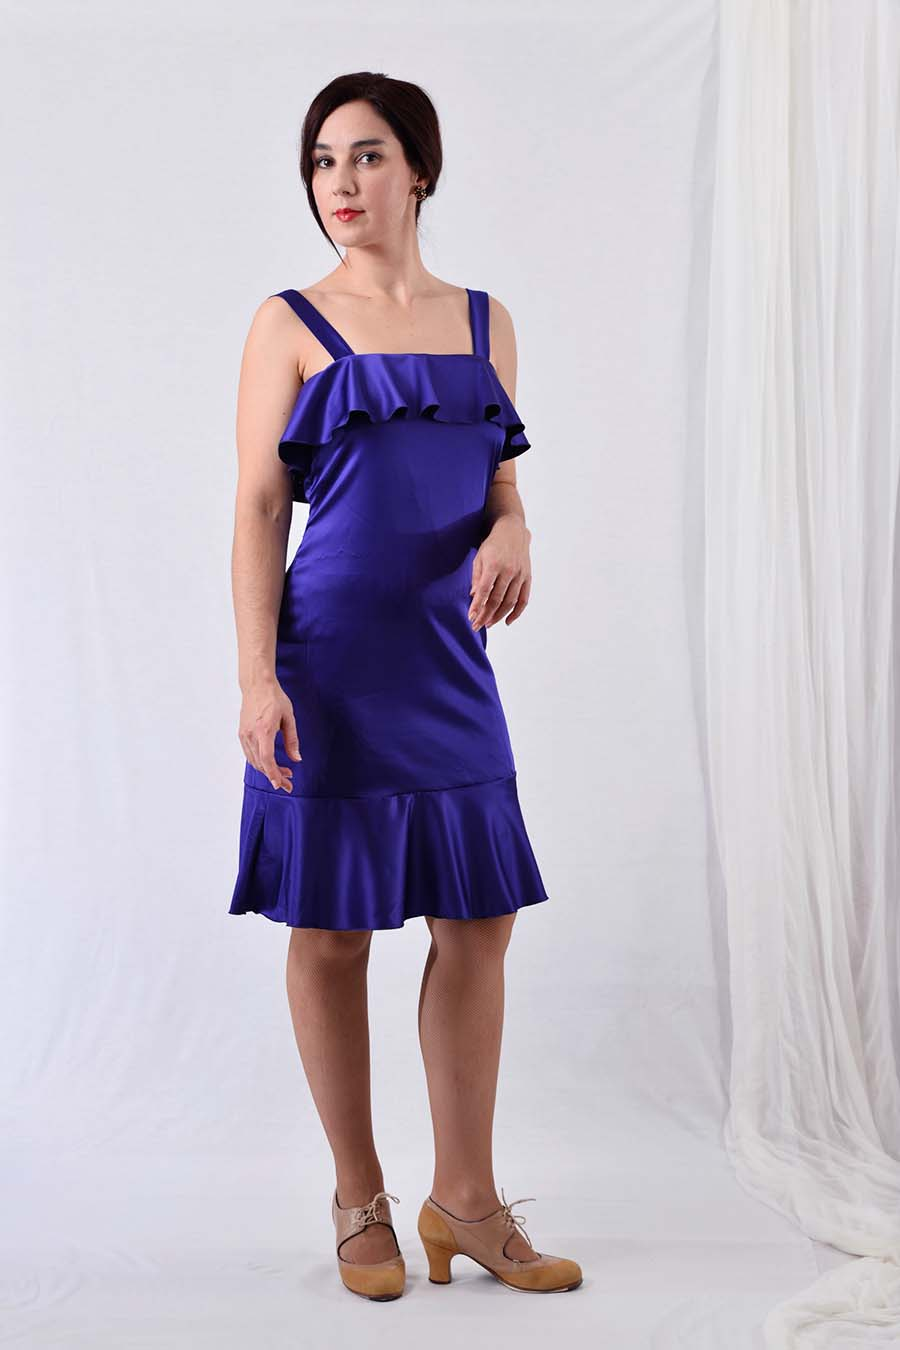 Satin cocktail dress in blue with ruffles